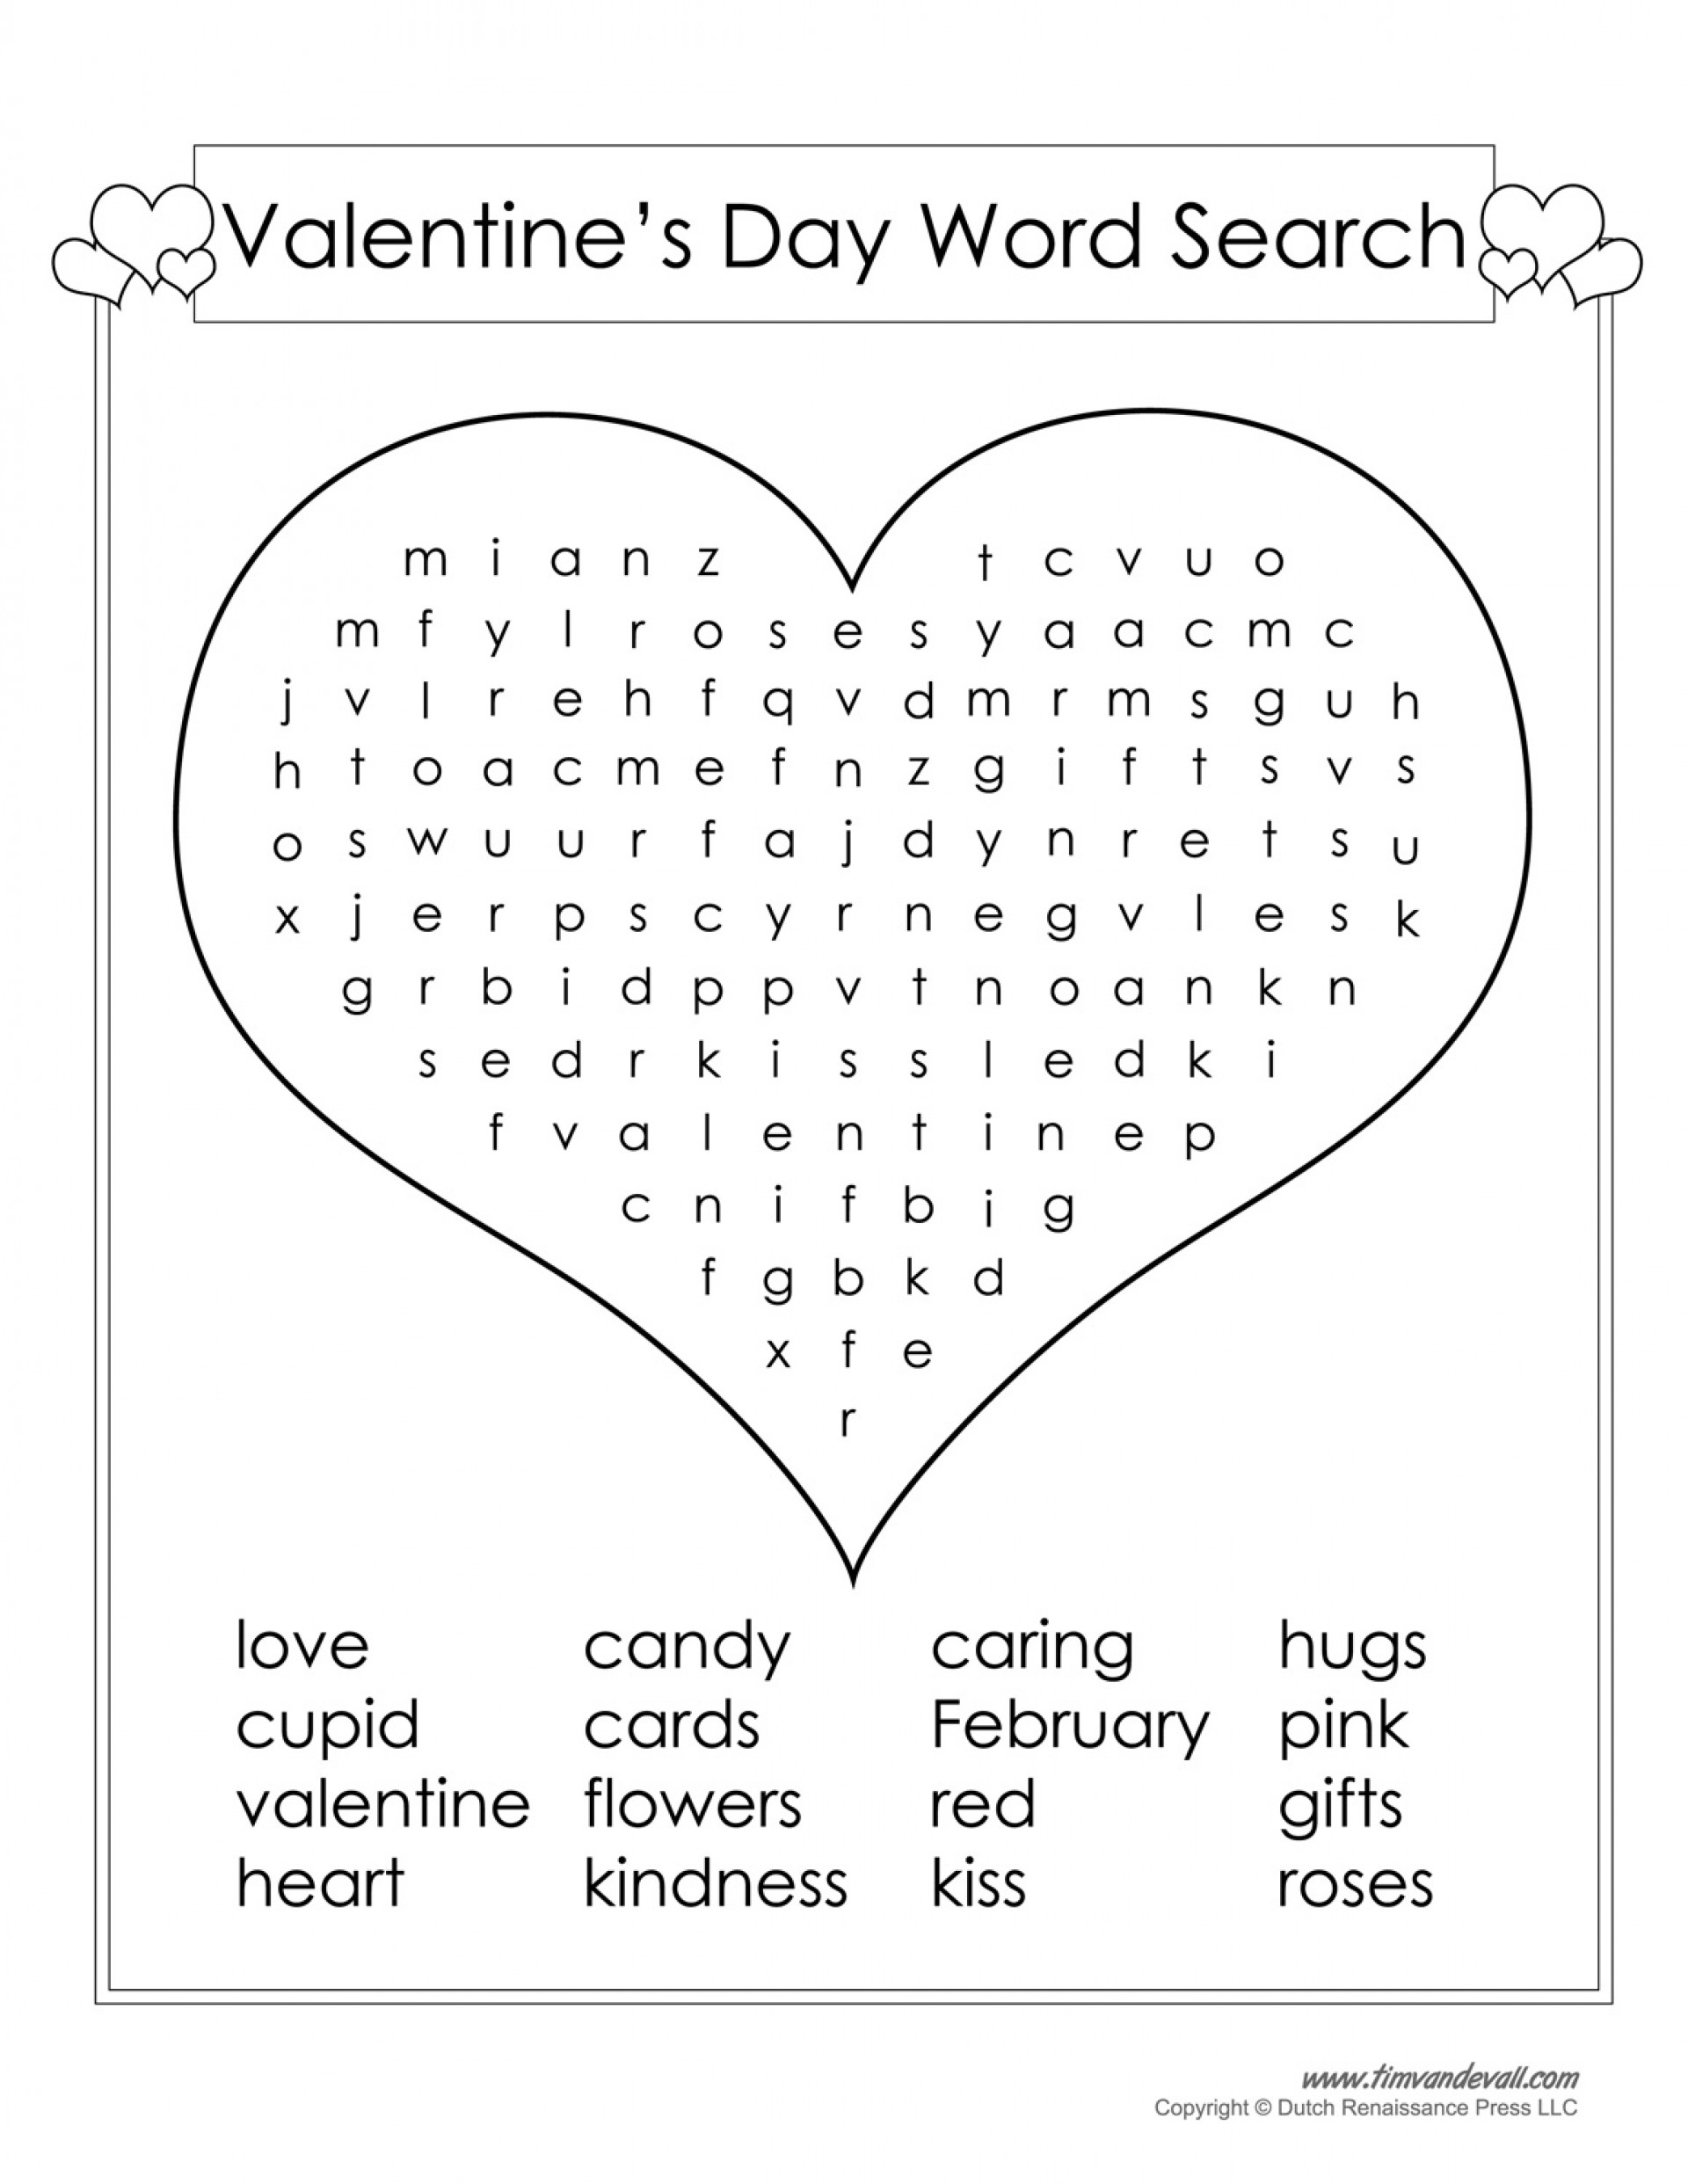 Valentines Day Word Search Large Light Pink Valentine S Crossword - Free Printable Valentine Word Search For Adults